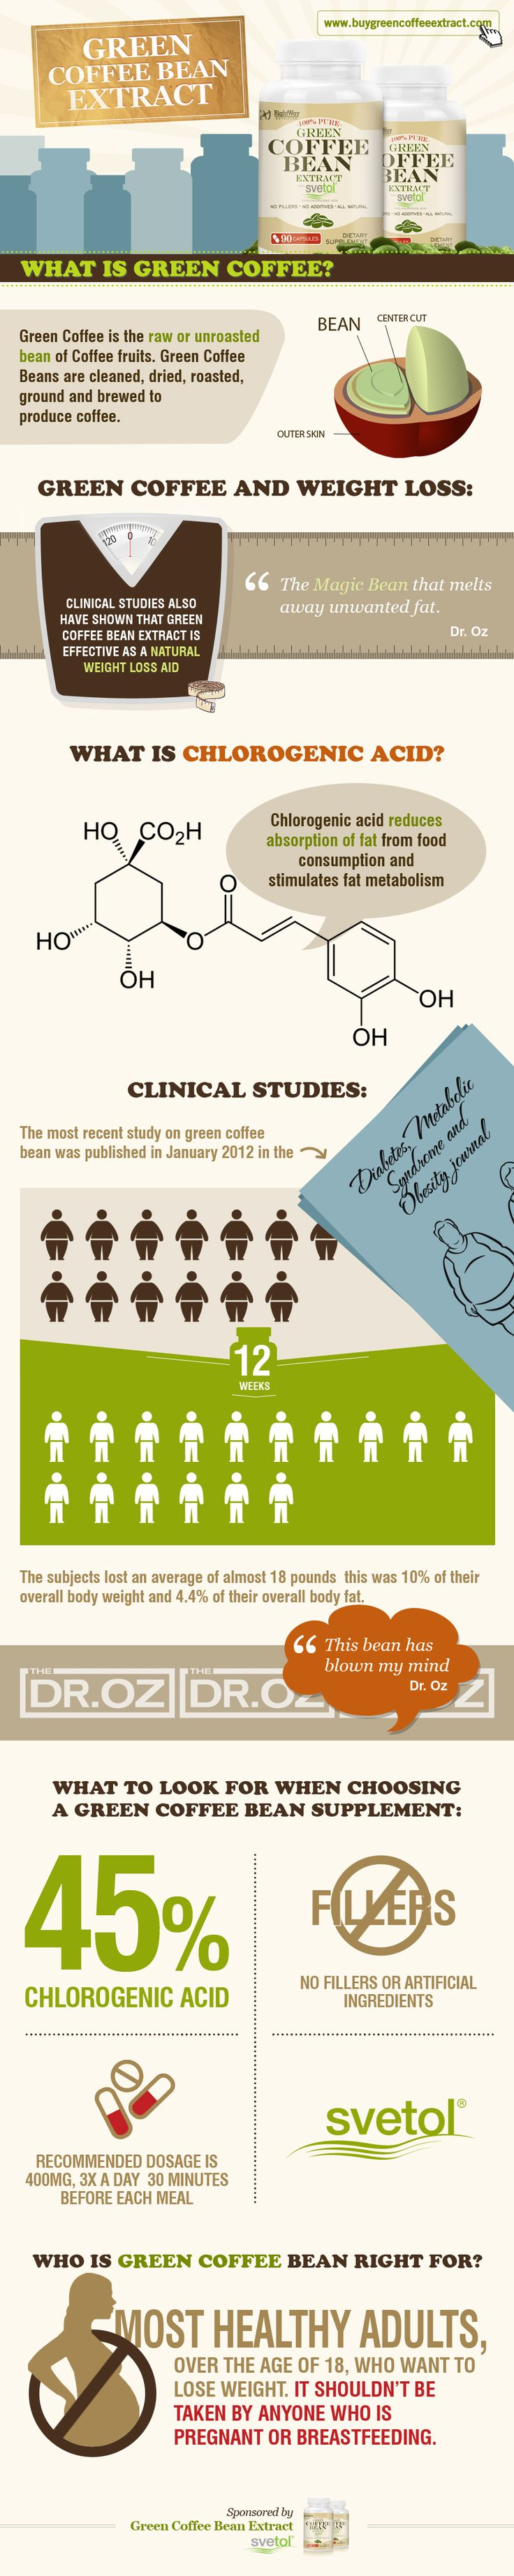 Green Coffee Bean Extract Benefits supposed to make me loose weight… Great idea!